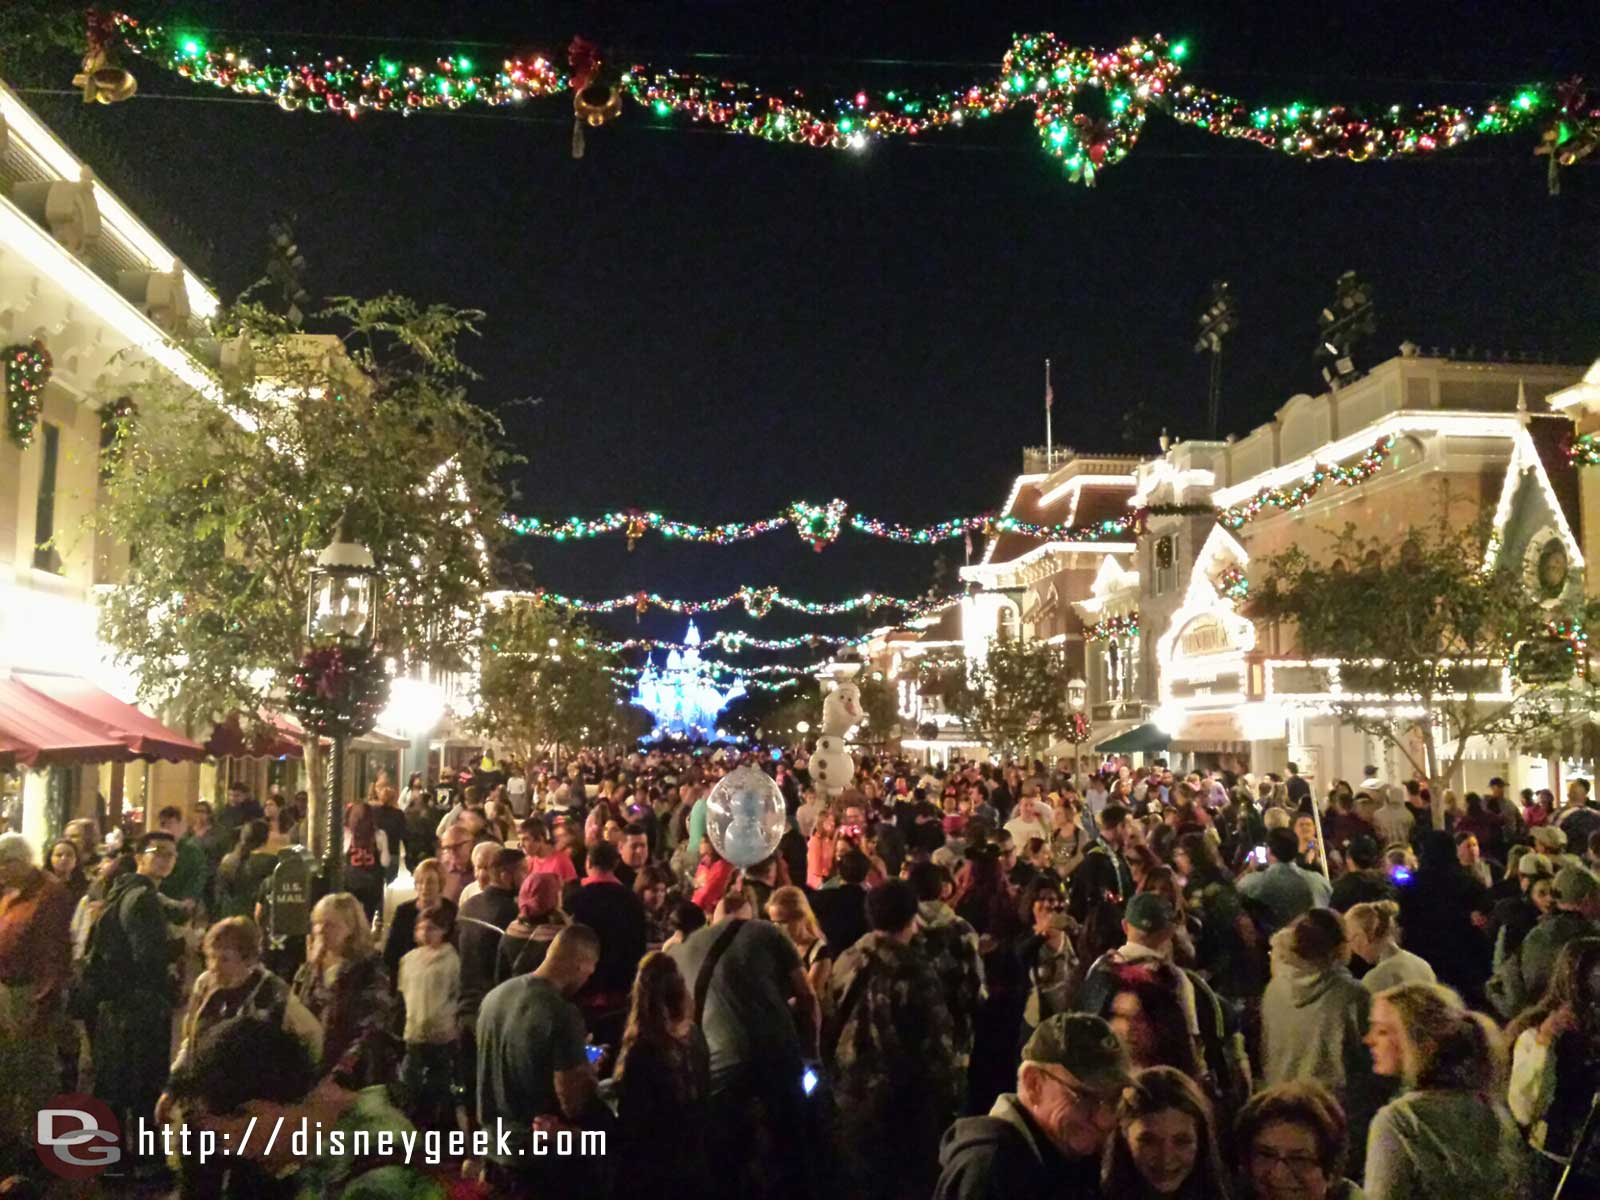 Main Street USA this evening #Disneyland